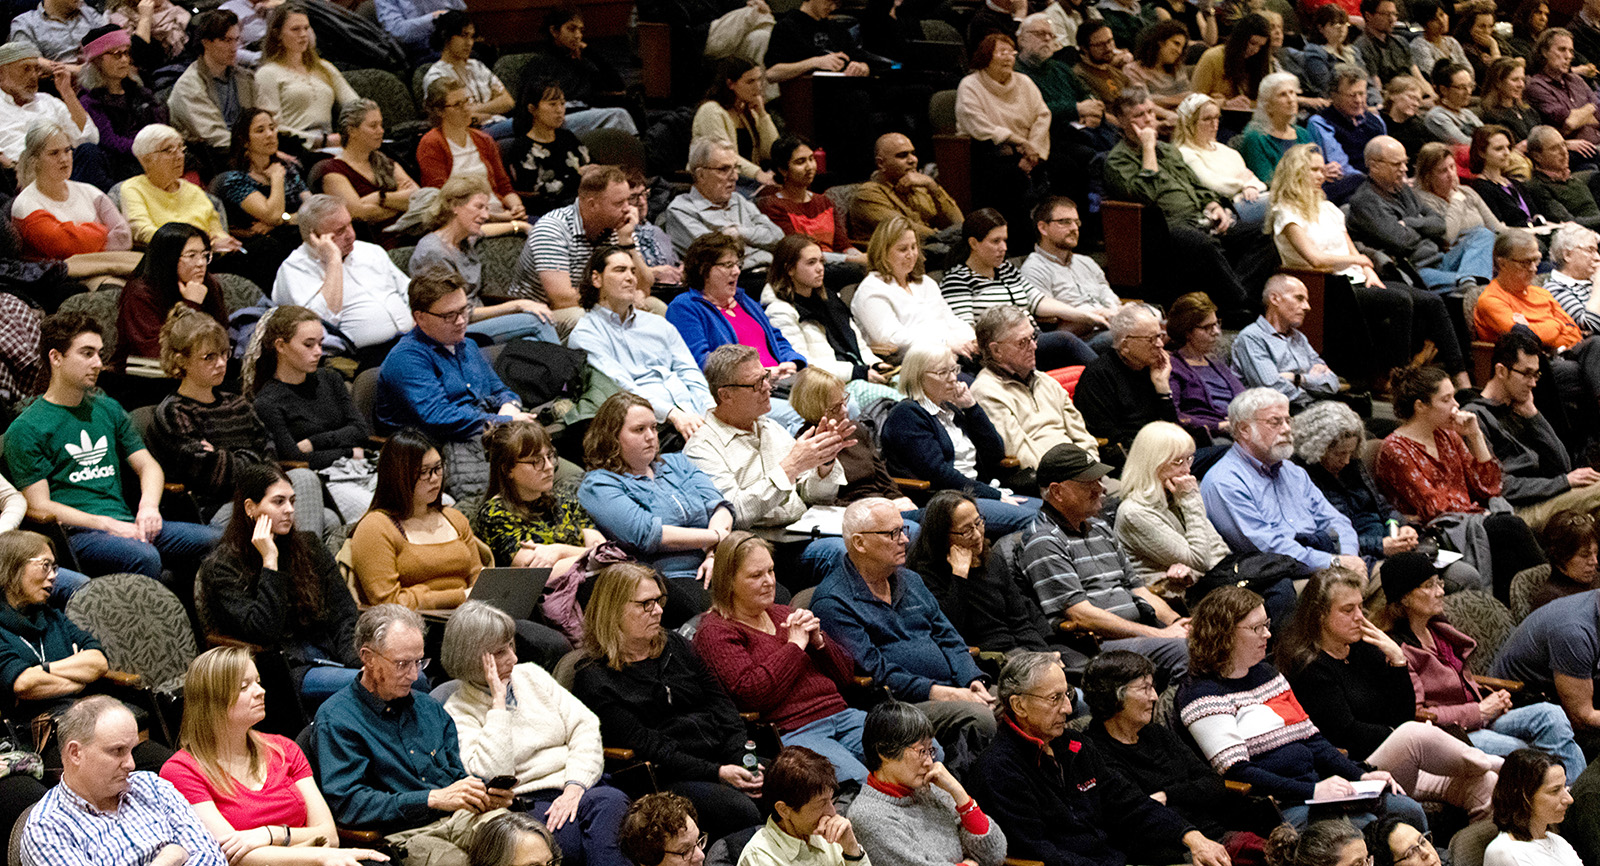 Audience members sitting in a crowded auditorium, engaged